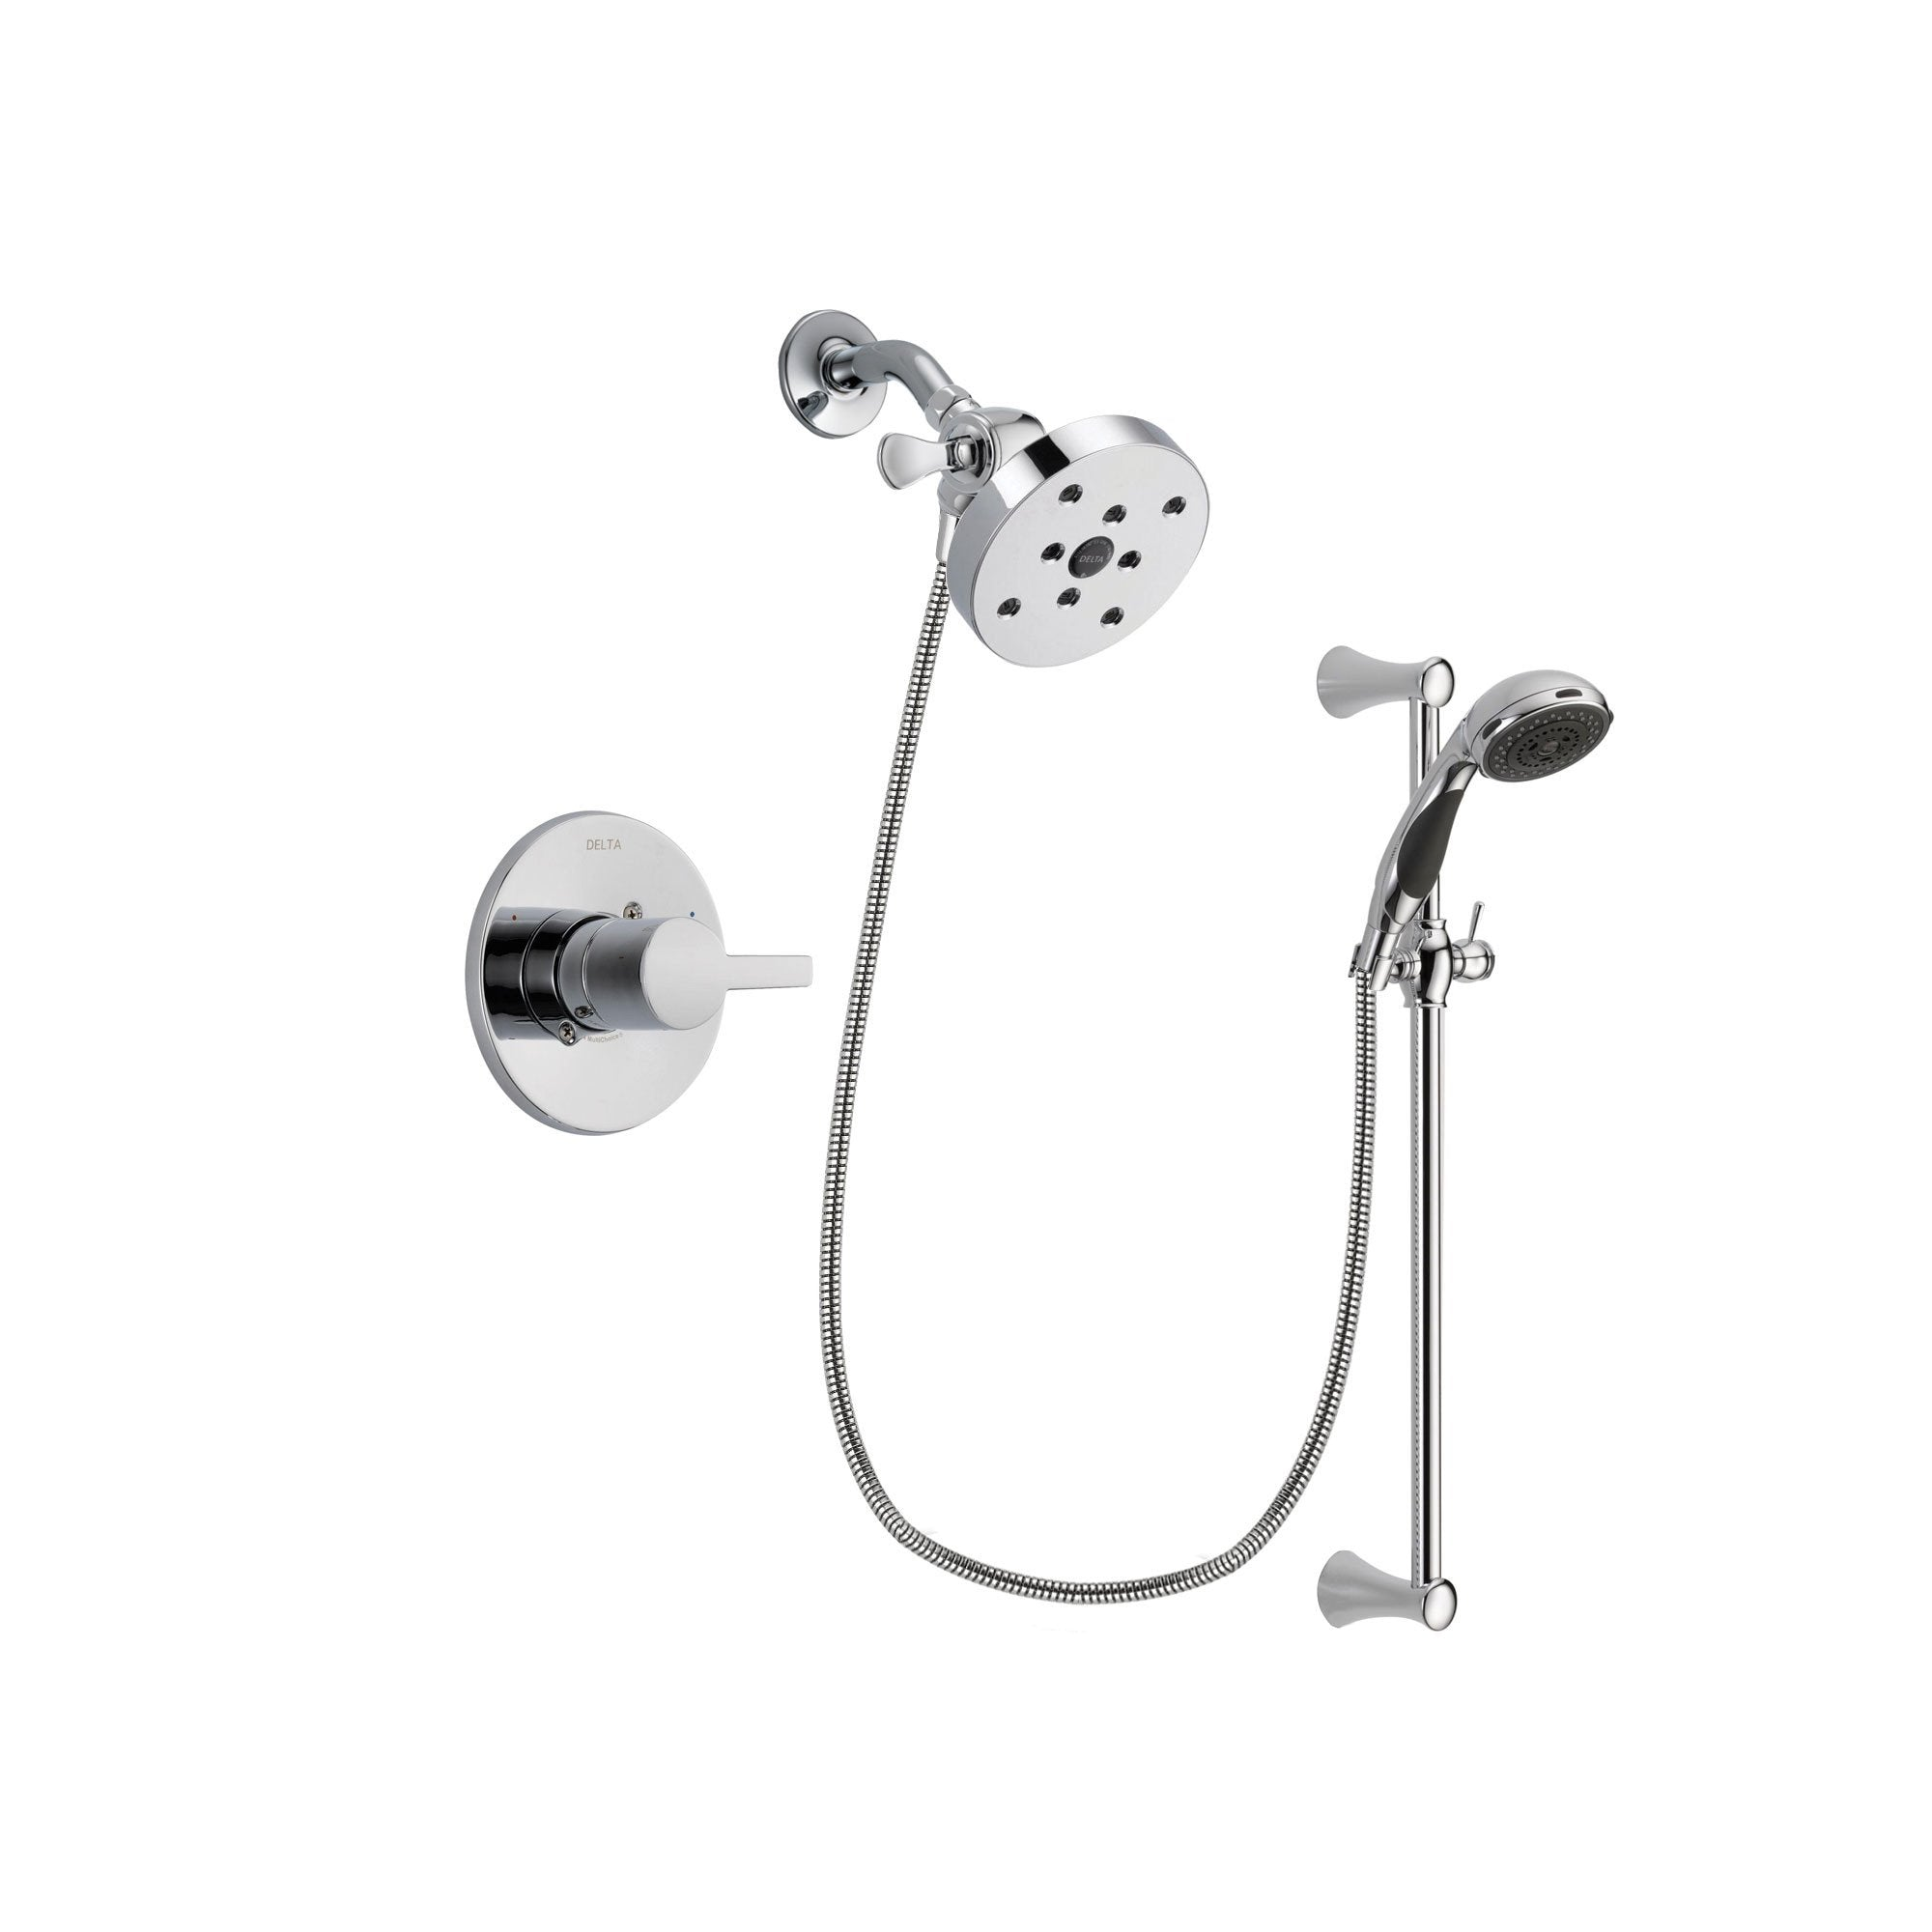 Delta Compel Chrome Shower Faucet System w/ Shower Head and Hand Shower DSP0814V